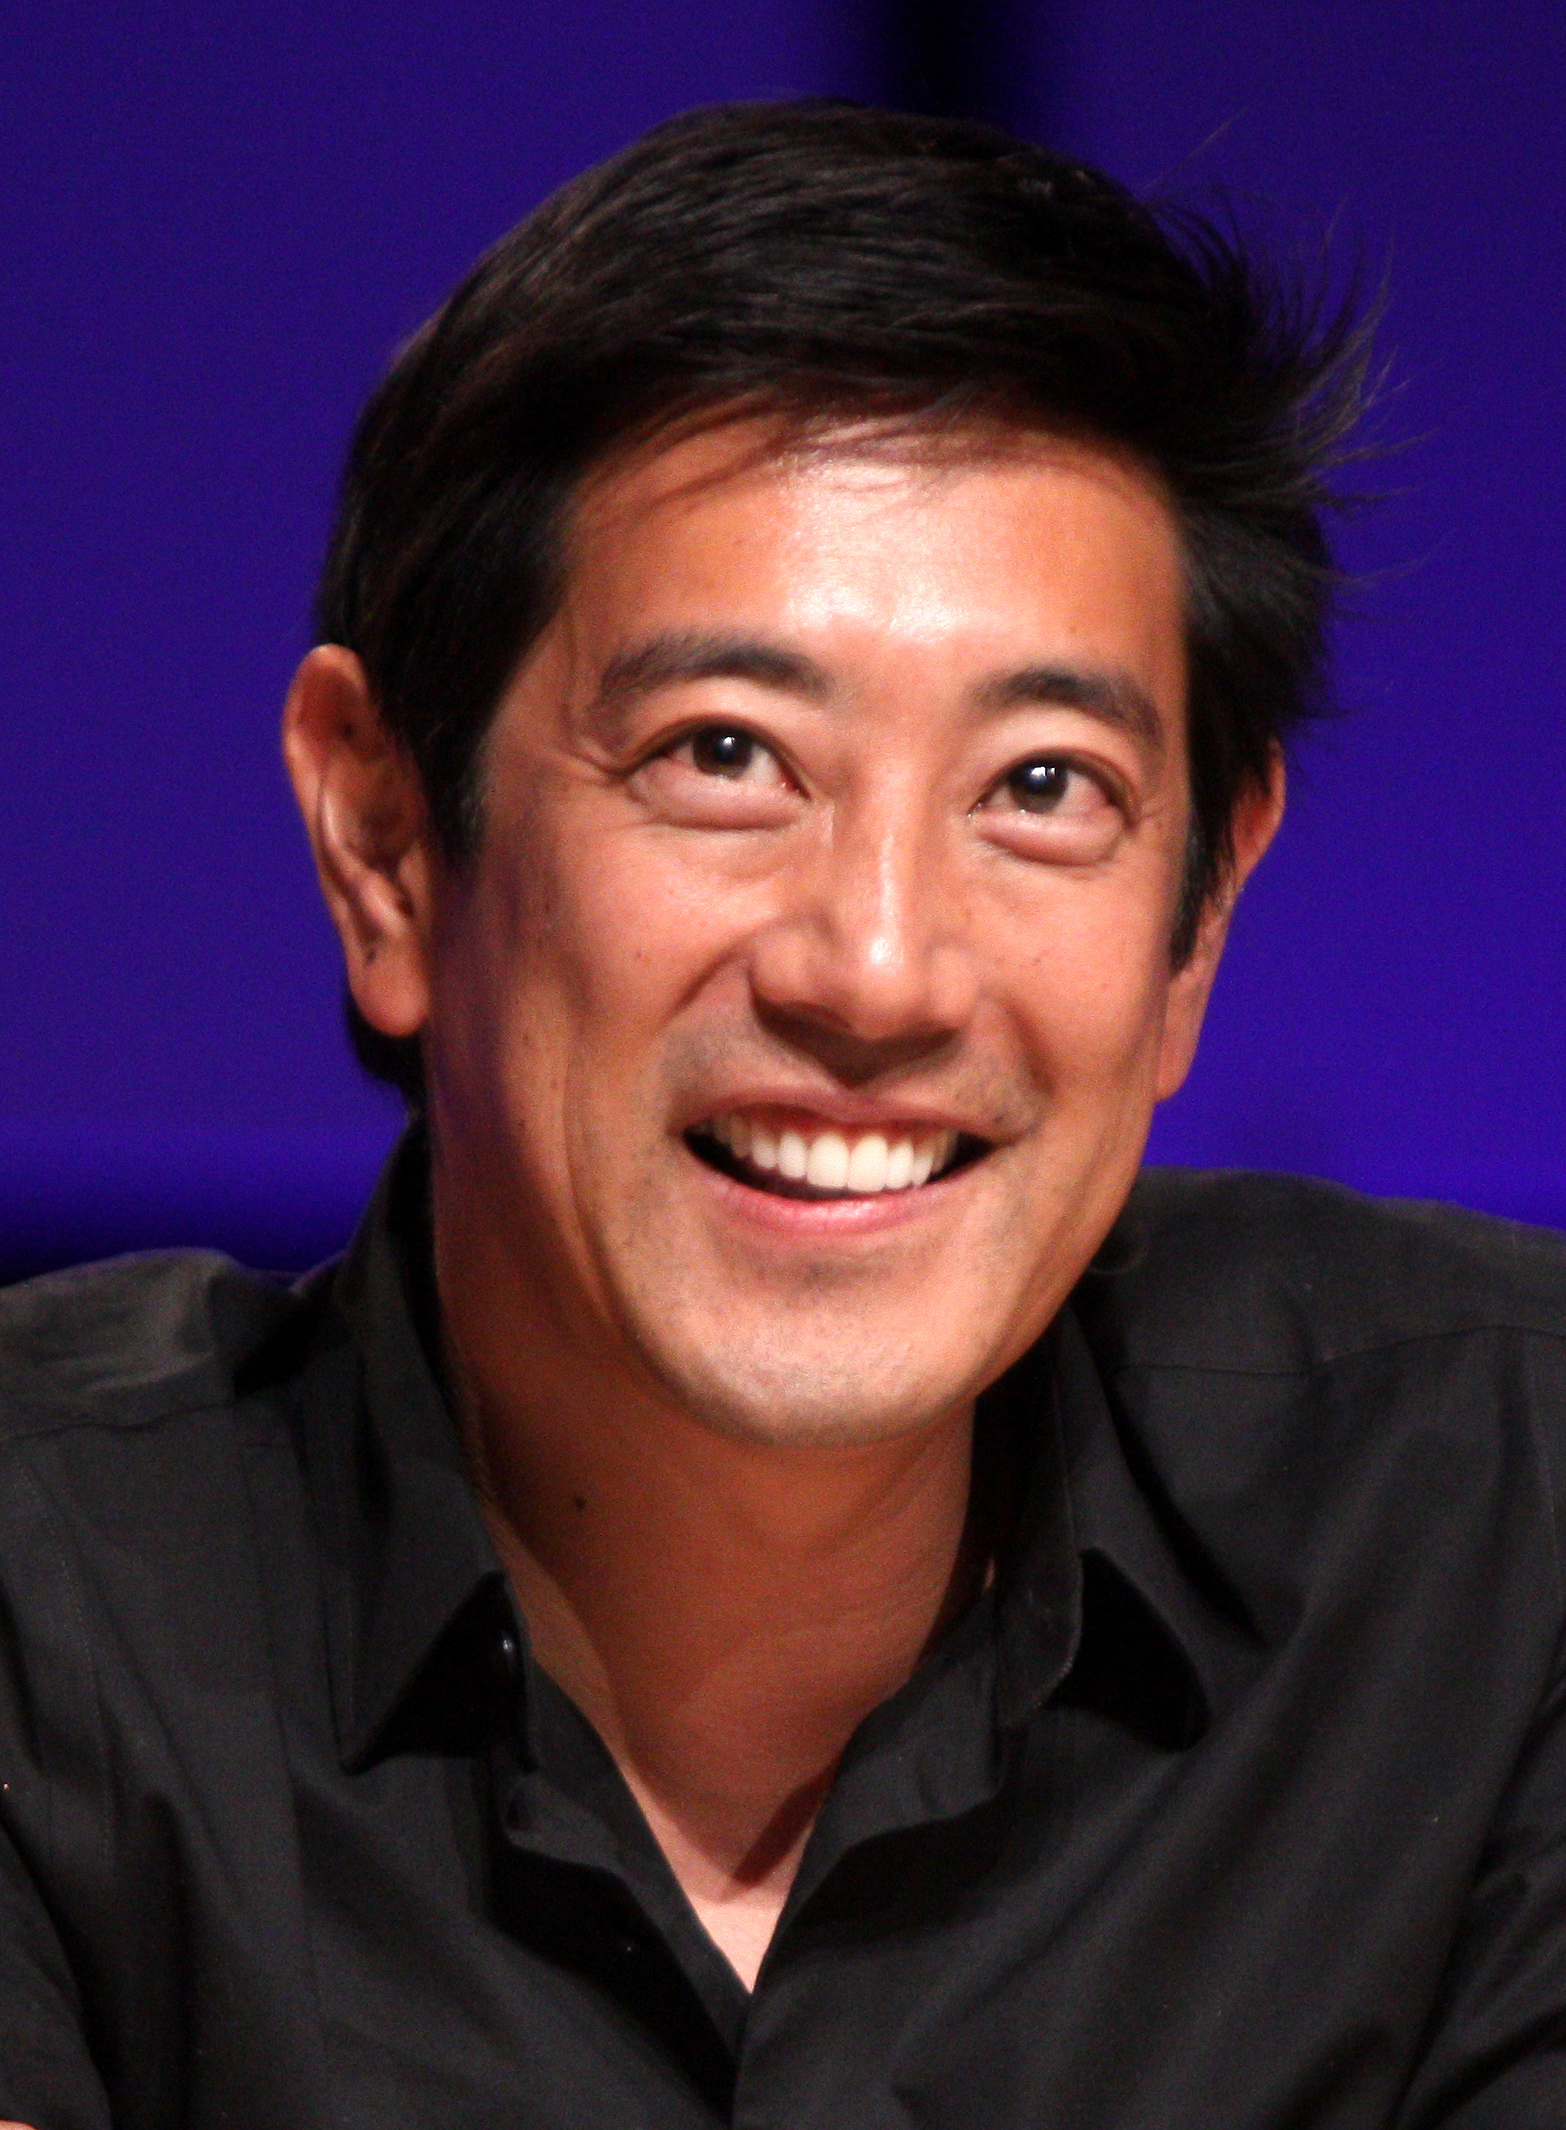 The 50-year old son of father (?) and mother(?) Grant Imahara in 2021 photo. Grant Imahara earned a  million dollar salary - leaving the net worth at  million in 2021